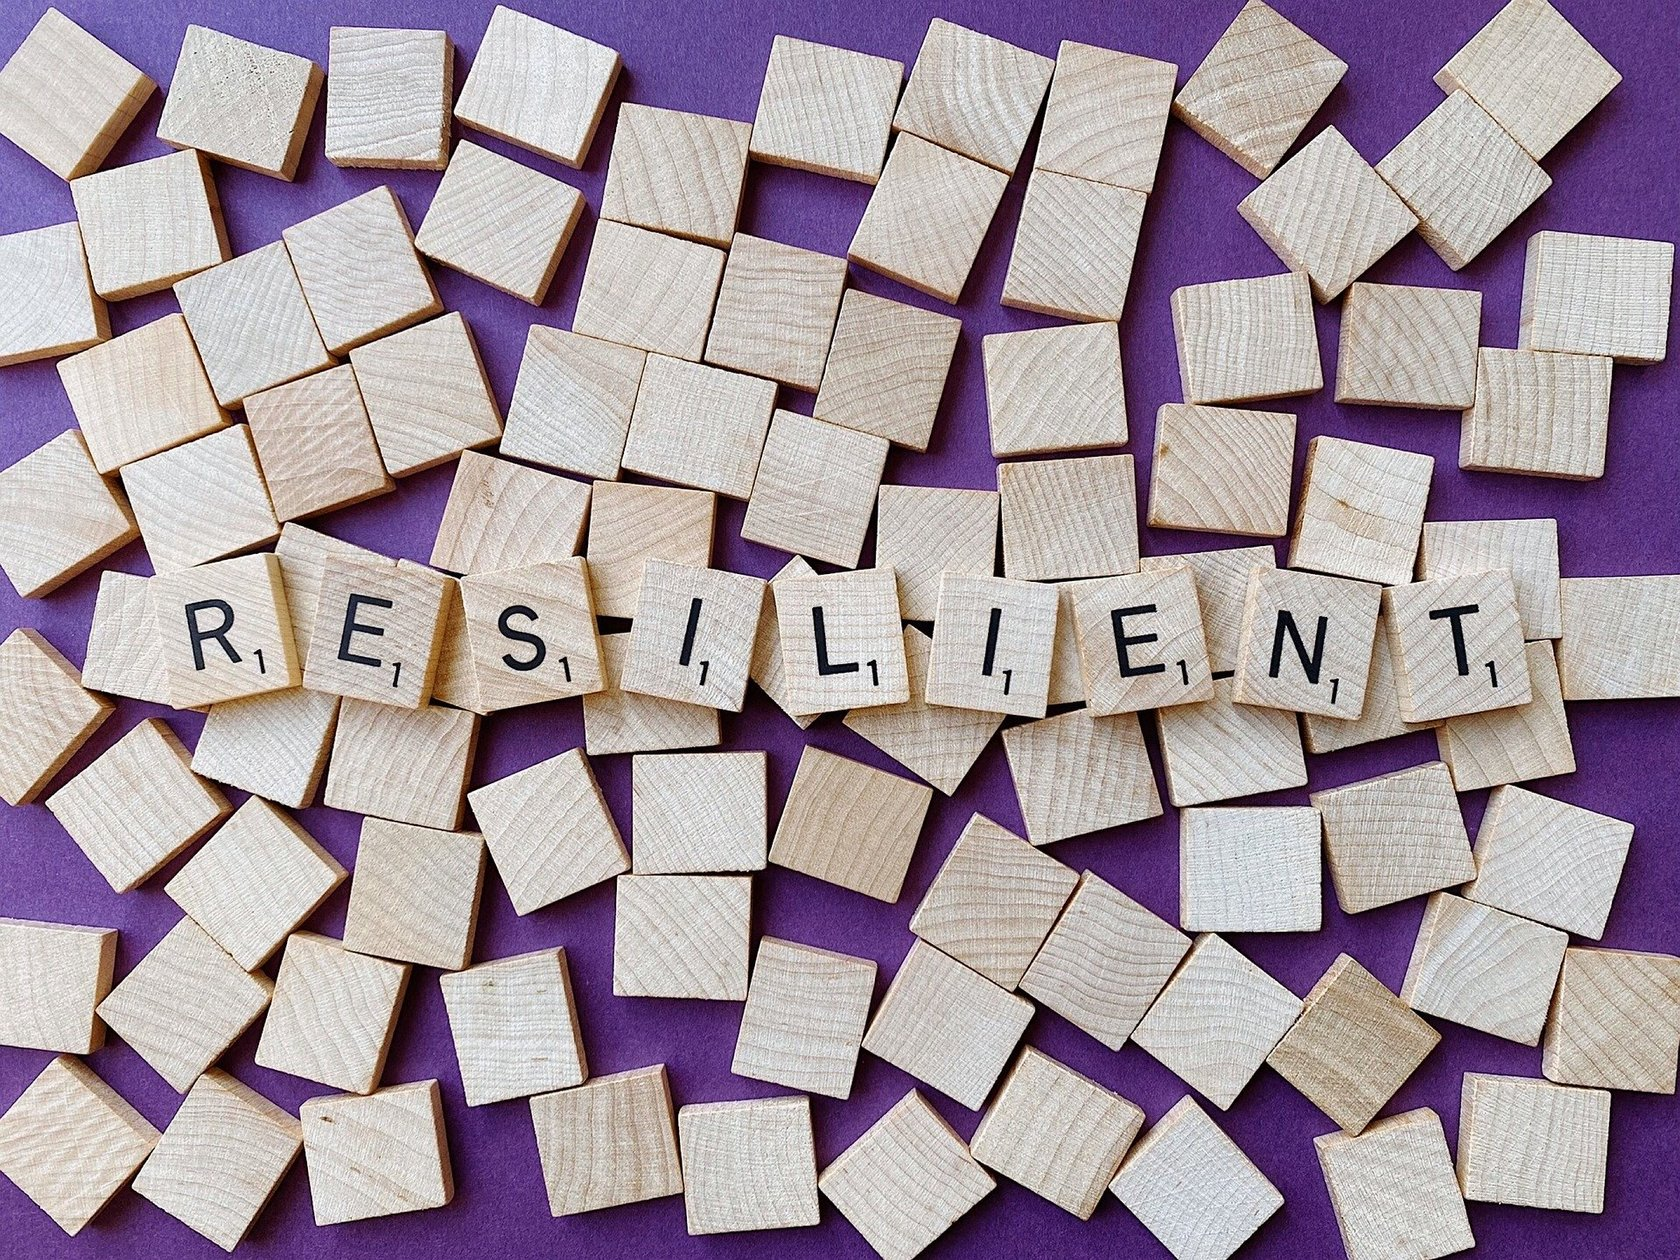 Resilience Resources Weekly: Responding to Fear